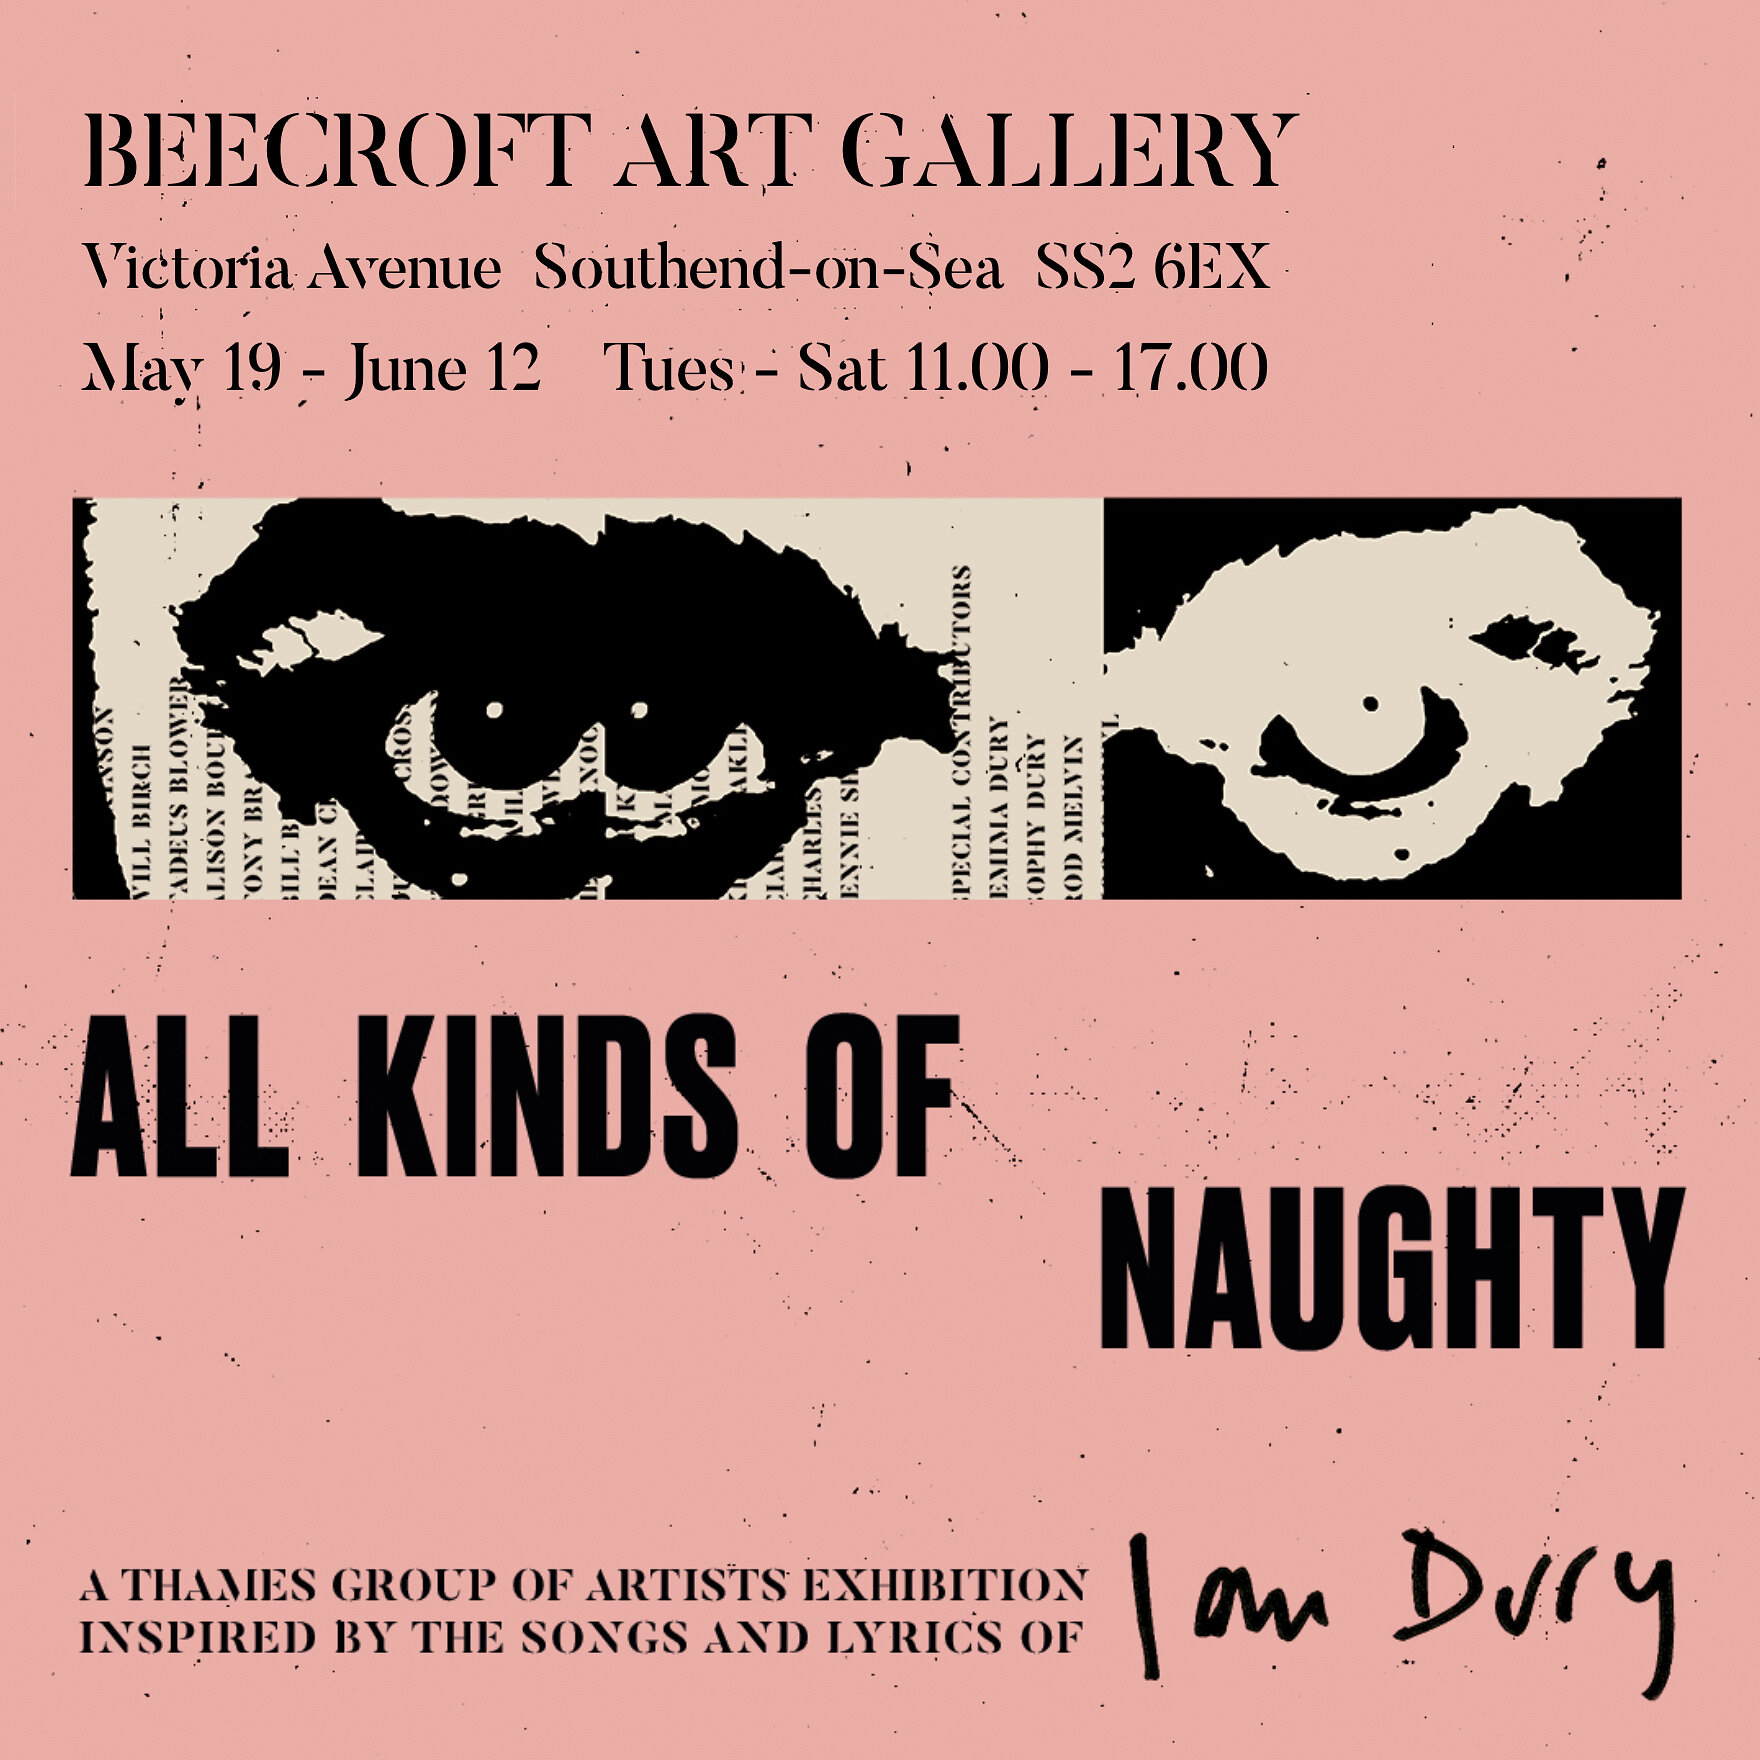 All Kinds Of Naughty Exhibition